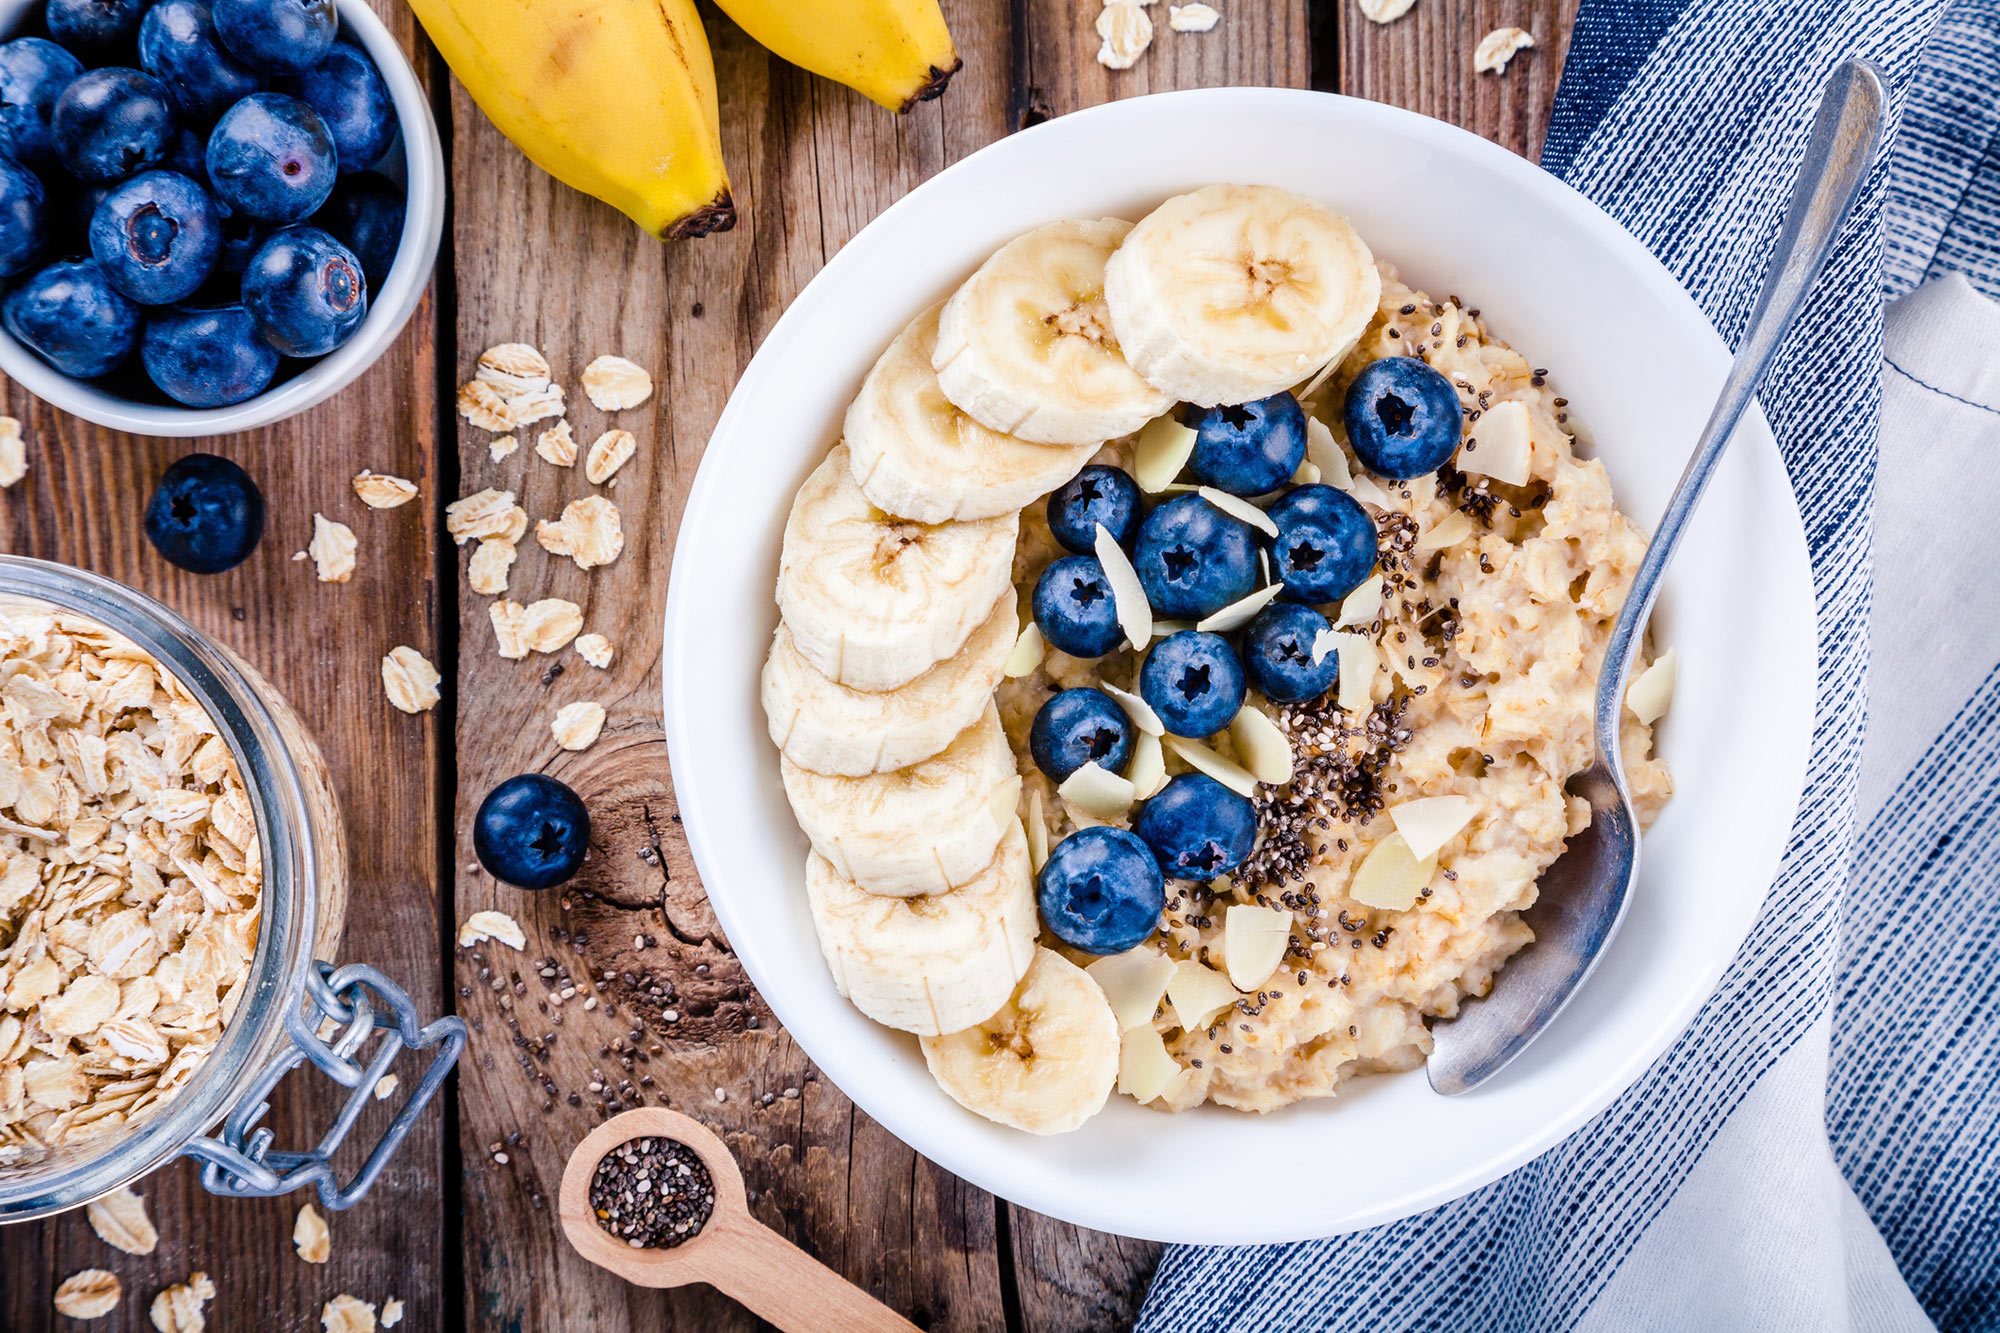 How oatmeal can ease some side effects of radiation treatment